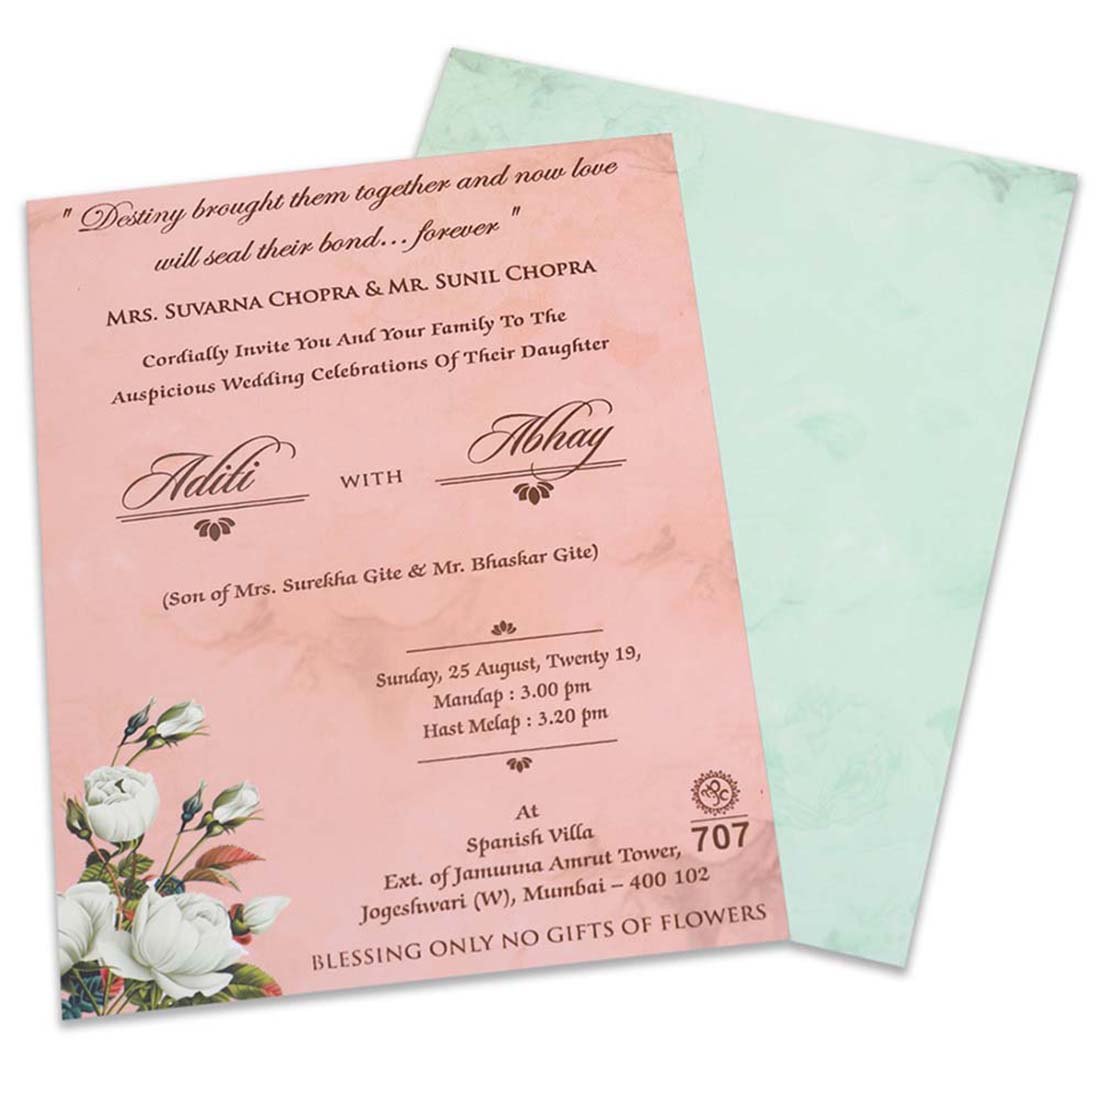 Floral wedding invite in pastel blue and pink - Click Image to Close